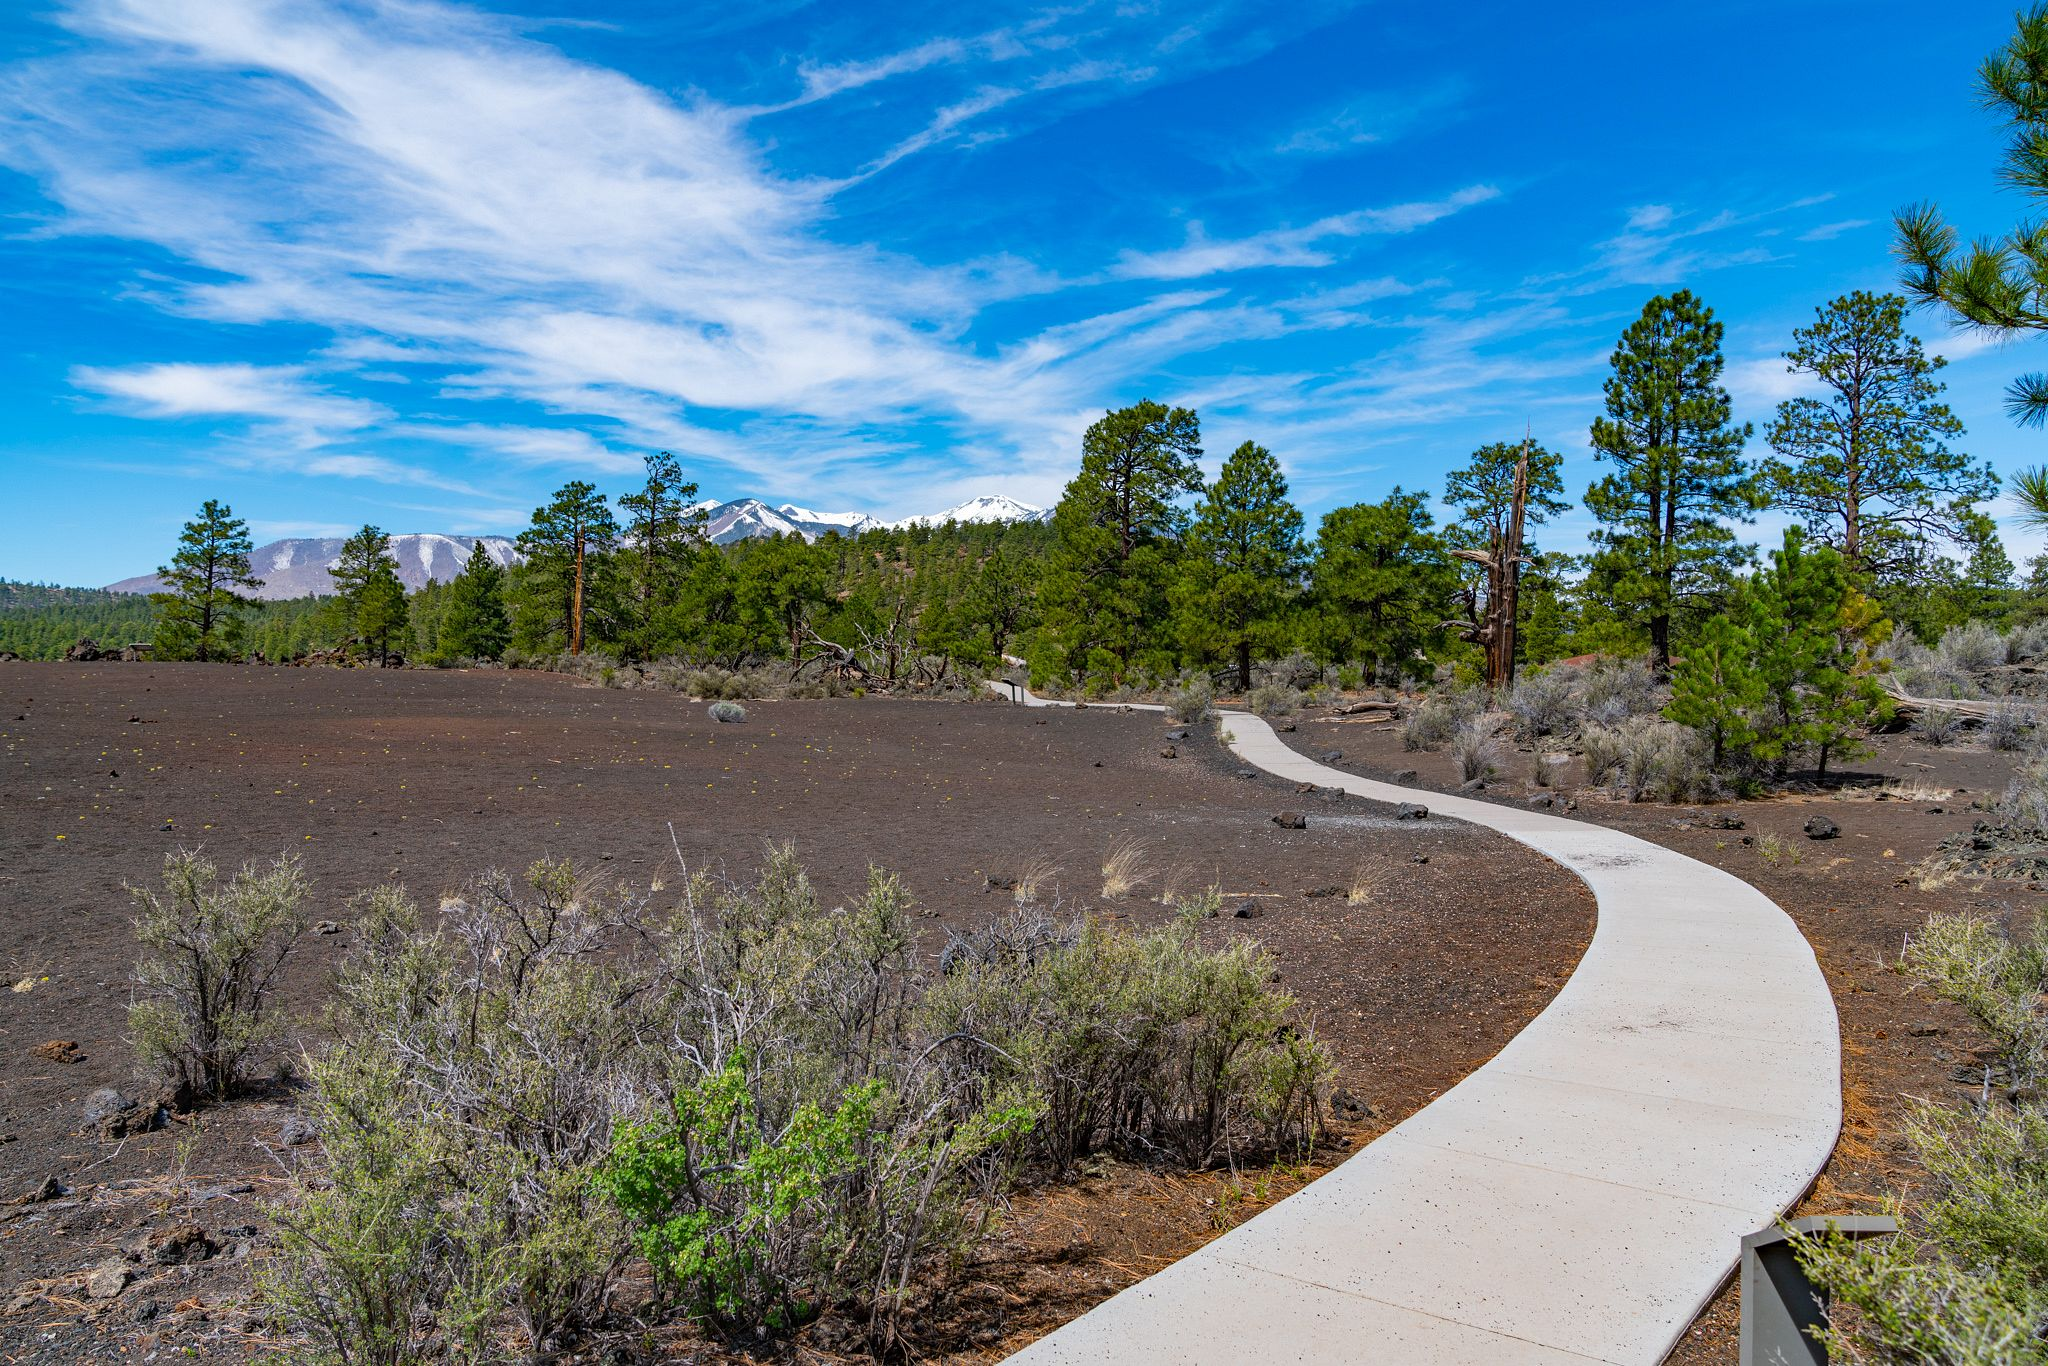 Sunset Crater Volcano Trail